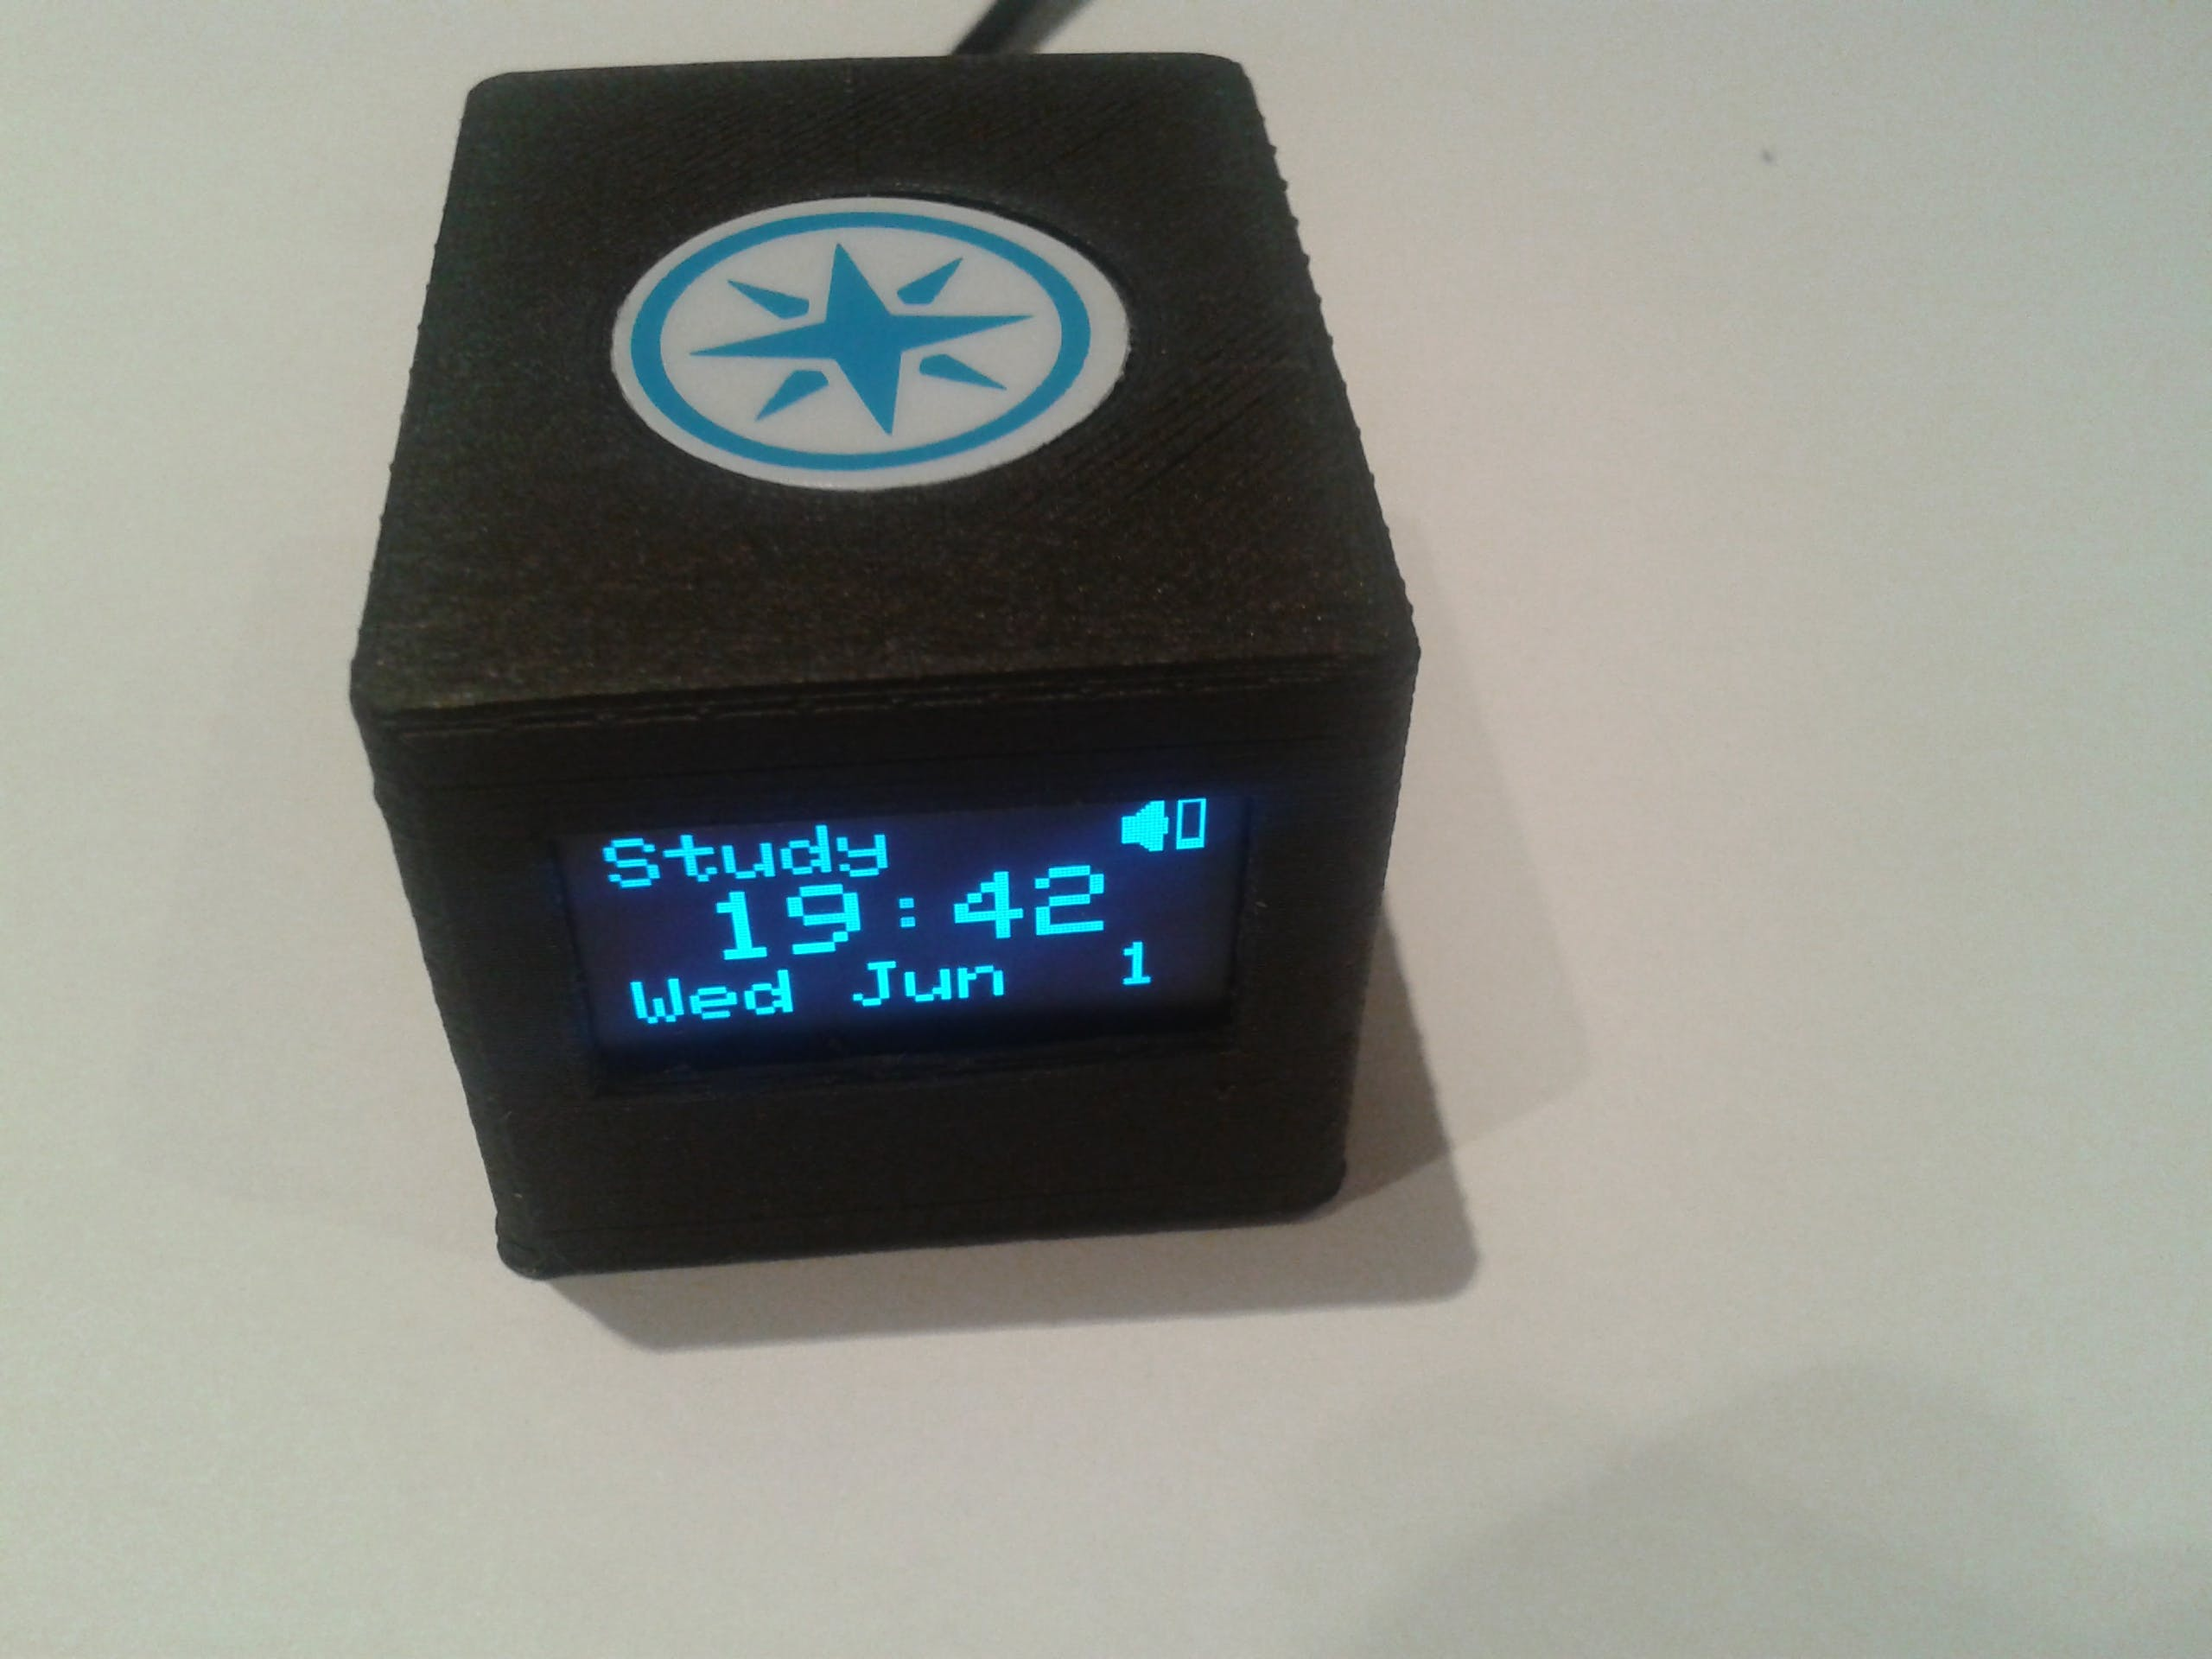 3D Printed Enclosure for Photon with OLED 1306 display